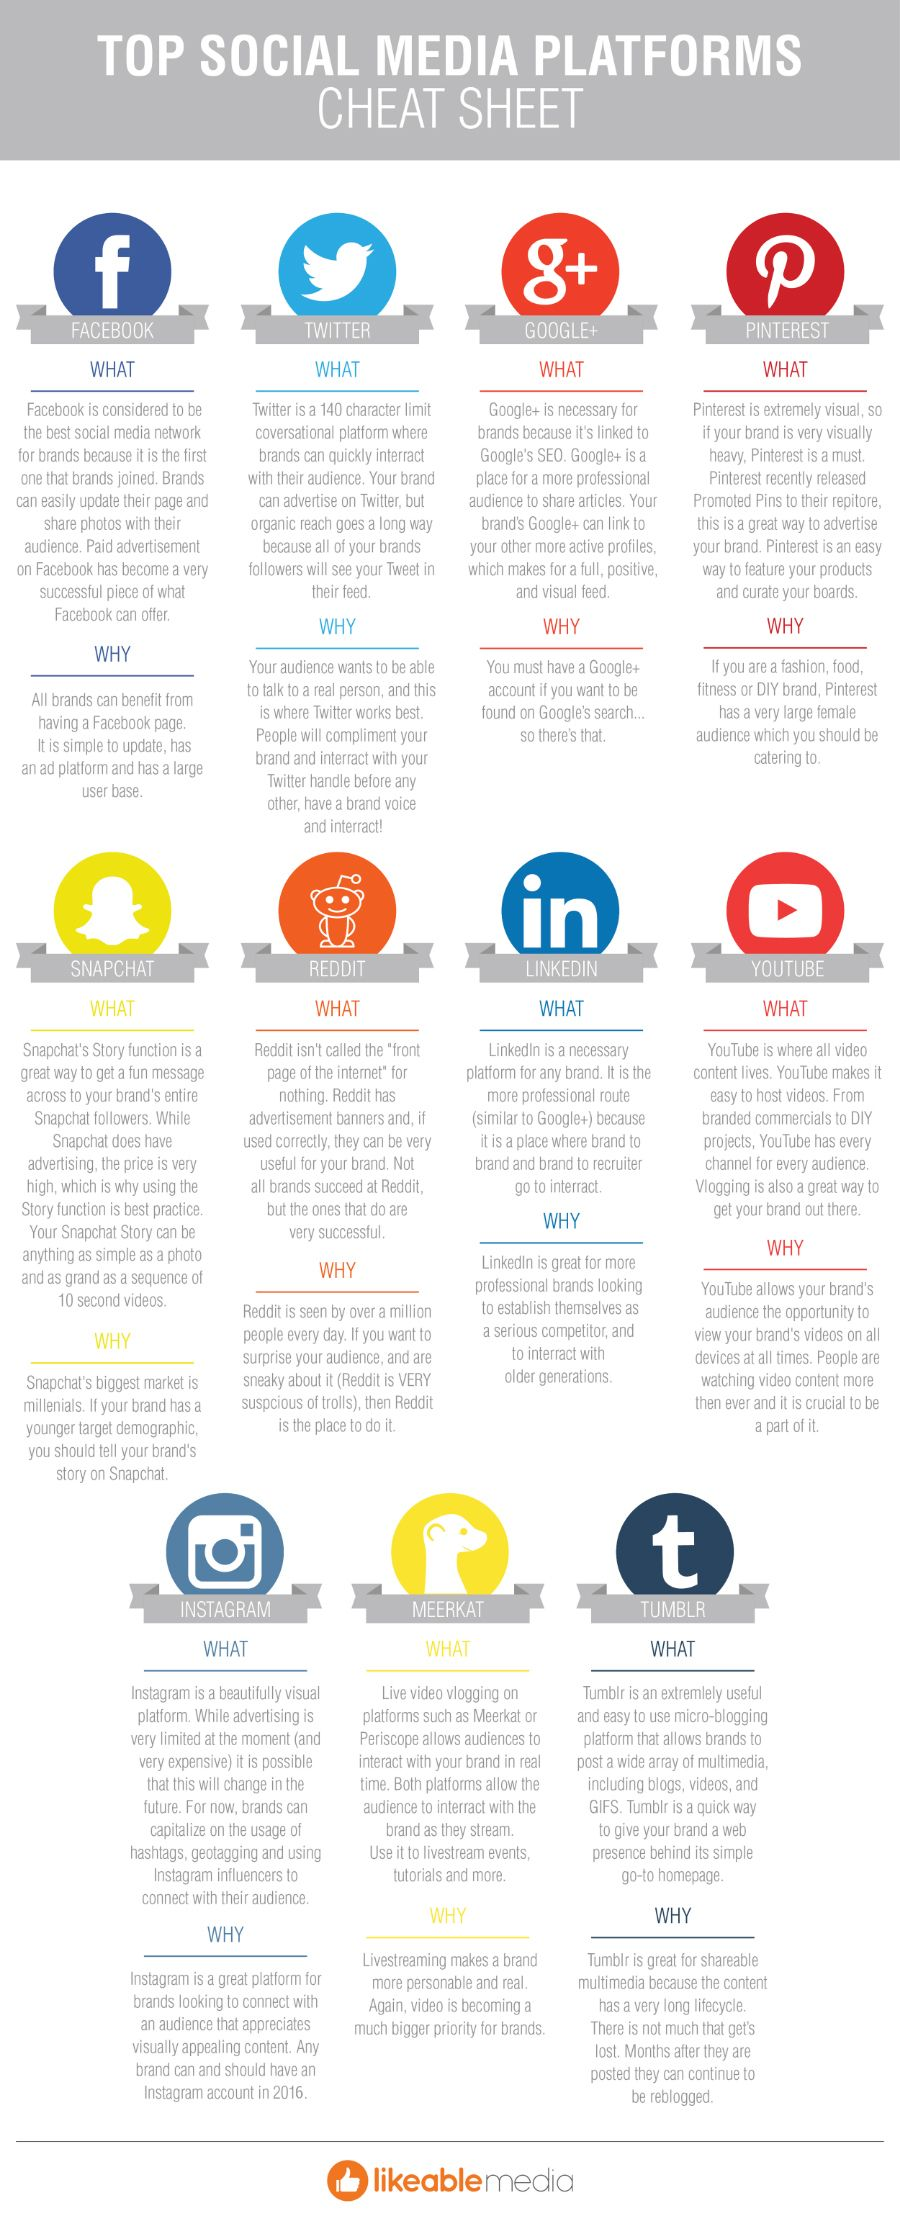 Top Social Media Platforms Cheat Sheet #infographic ...